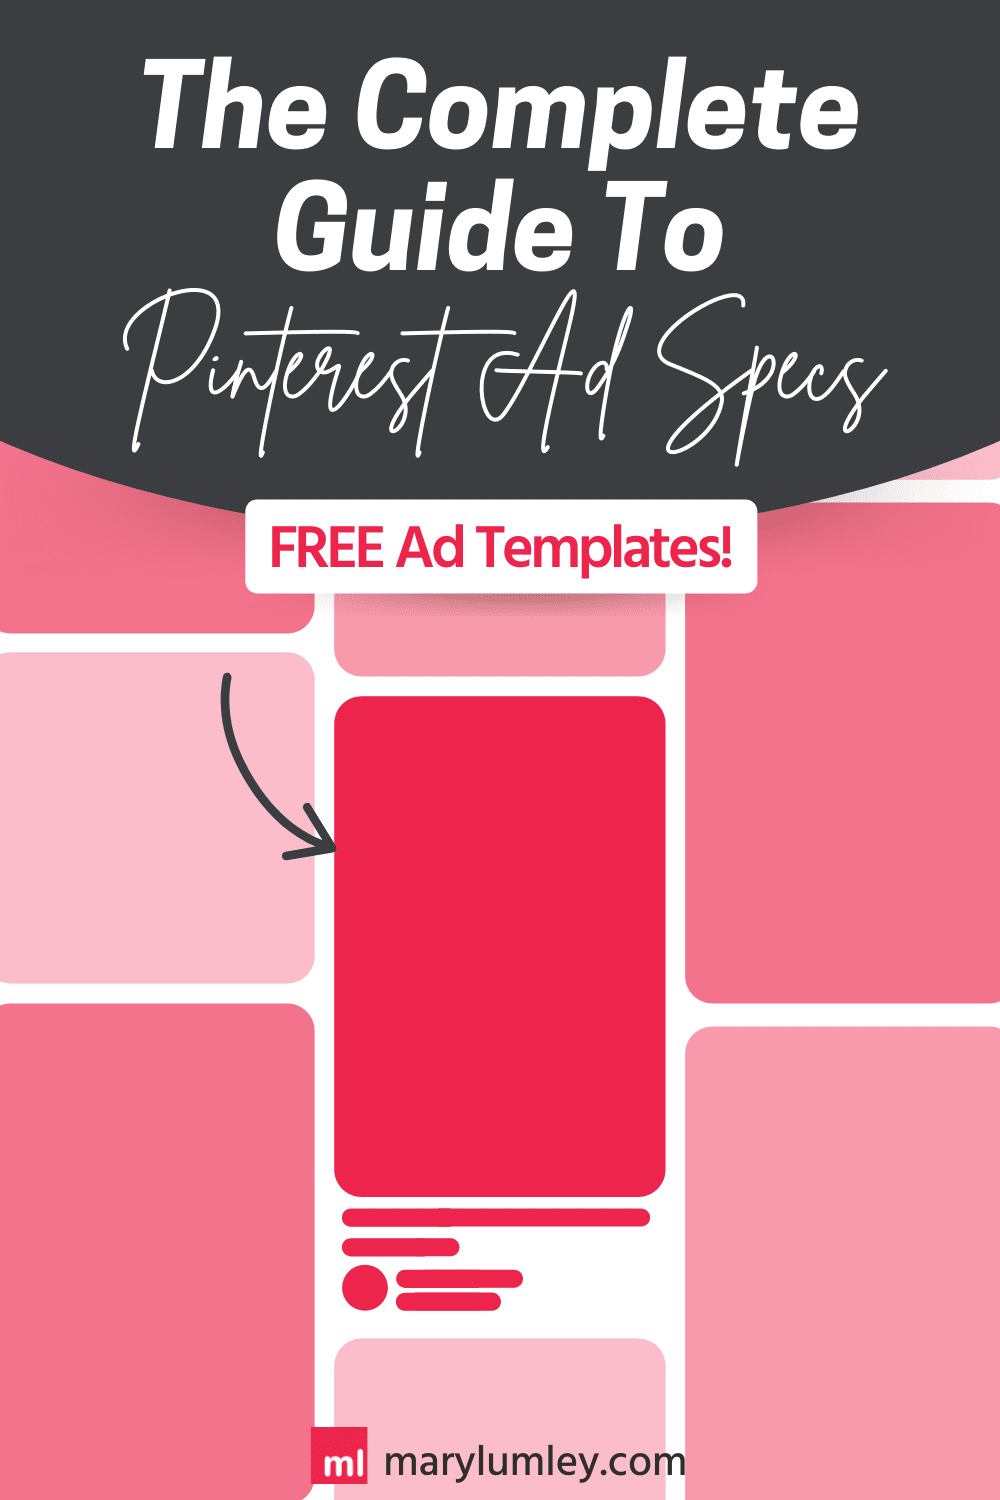 The Complete Guide to Pinterest Ad Specs, covers everything marketers and business owners need to know about Pinterest ad specs, including FREE Pinterest Ad Templates to get you started in no time! | Mary Lumley – Conversion Focused Pinterest Marketing